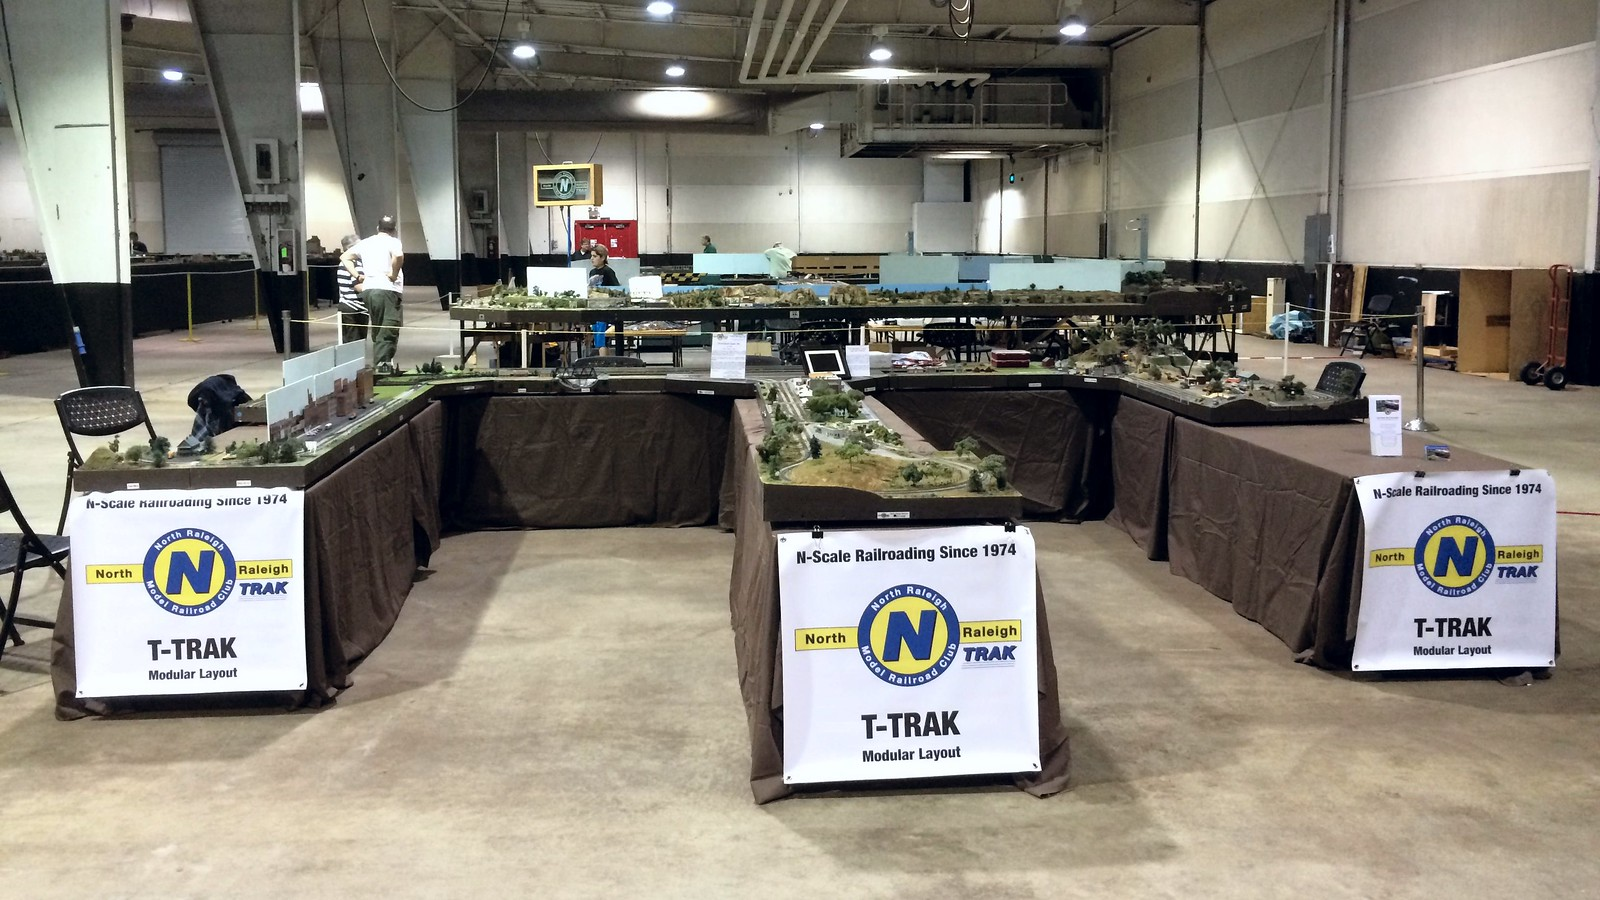 Neuse River Valley 2016 Show Report Nrmrc Model Railroad Dcc Wiring How To Build A Train Layouts G Z S T Trak Layout Nrv